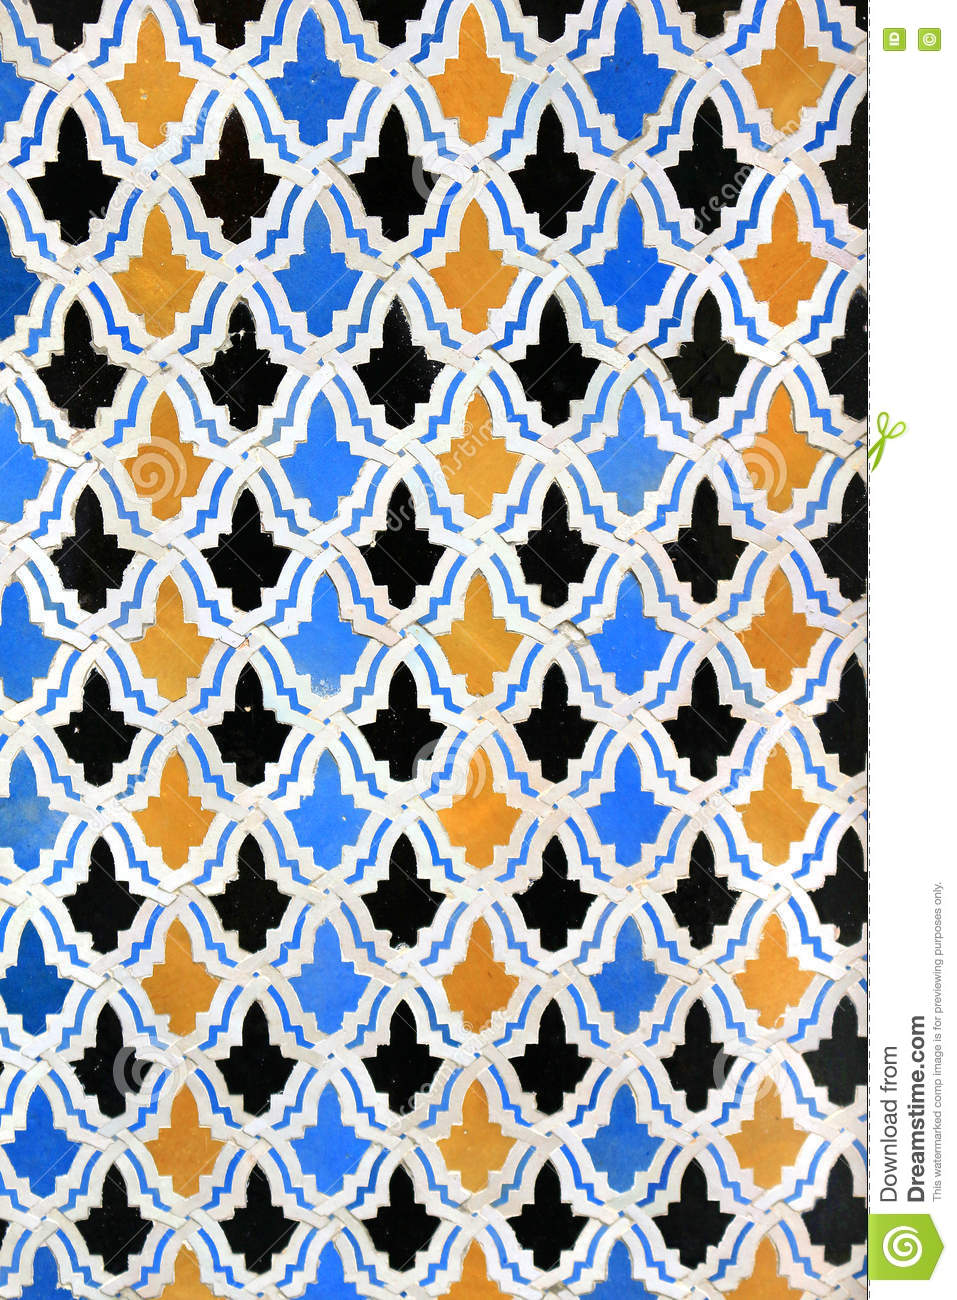 Moroccan Mosaic Tiles On Wall Stock Photo - Image of mosaic ...